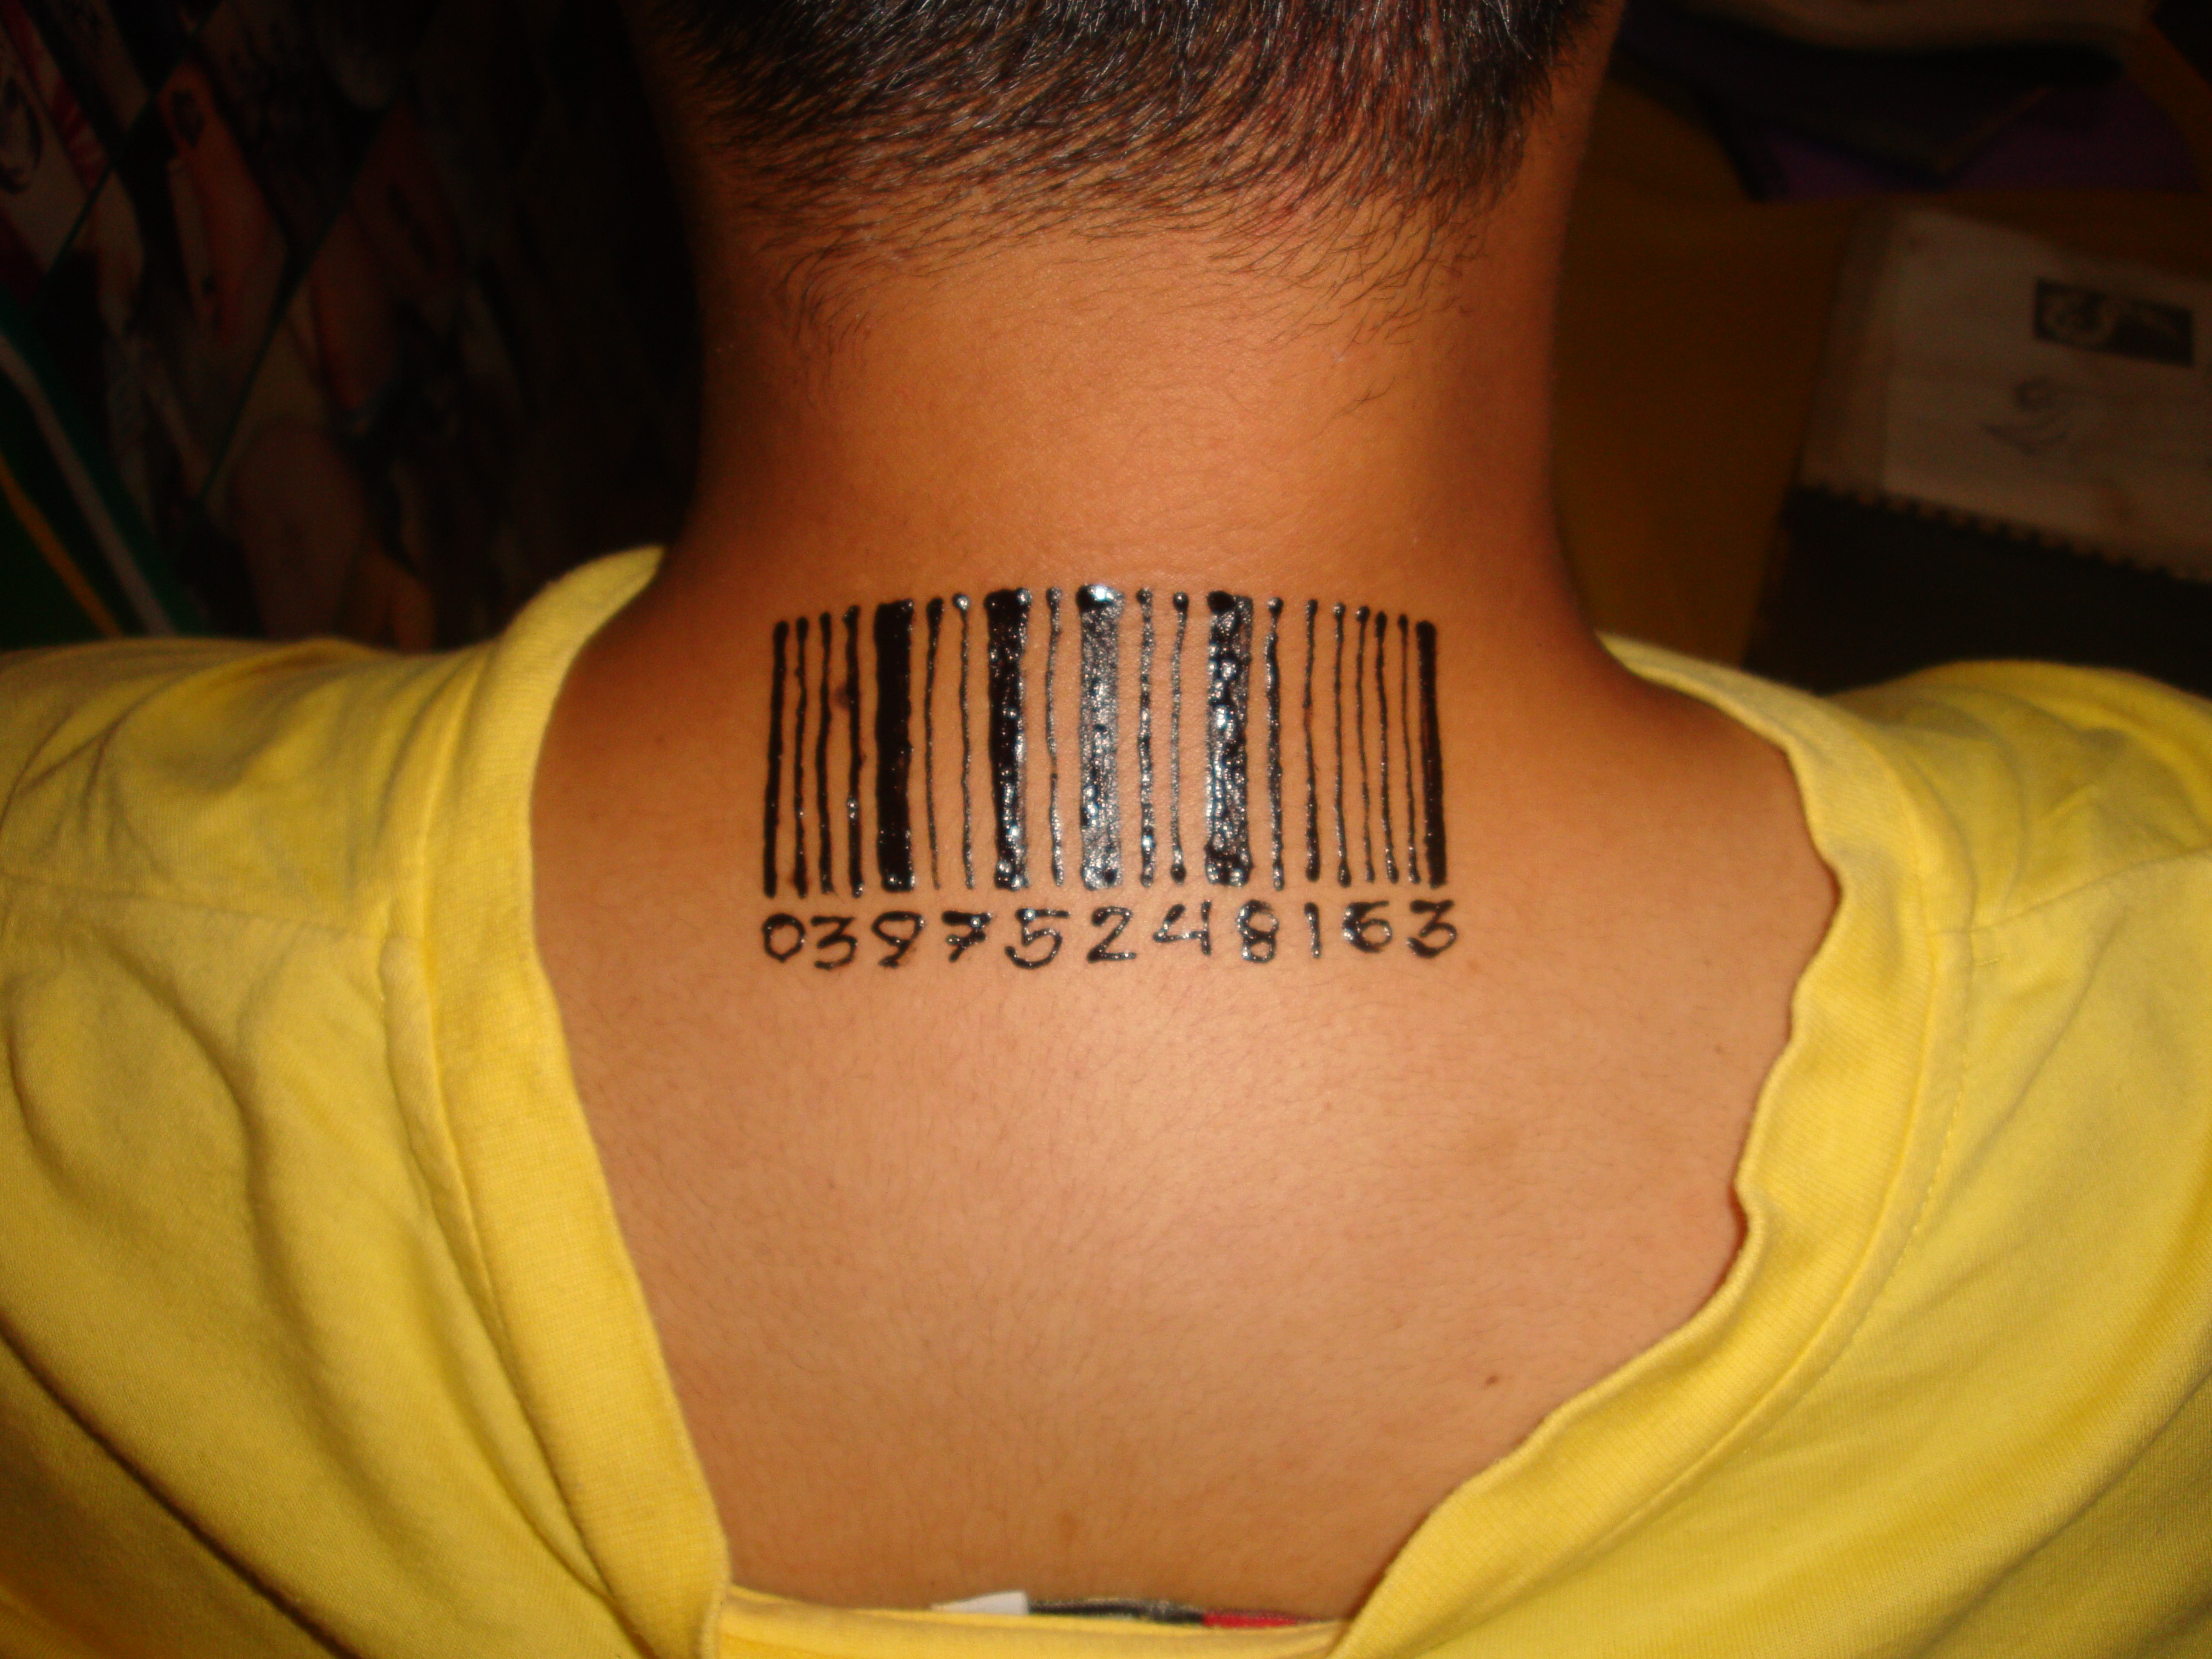 barcode tattoos designs ideas and meaning tattoos for you. Black Bedroom Furniture Sets. Home Design Ideas